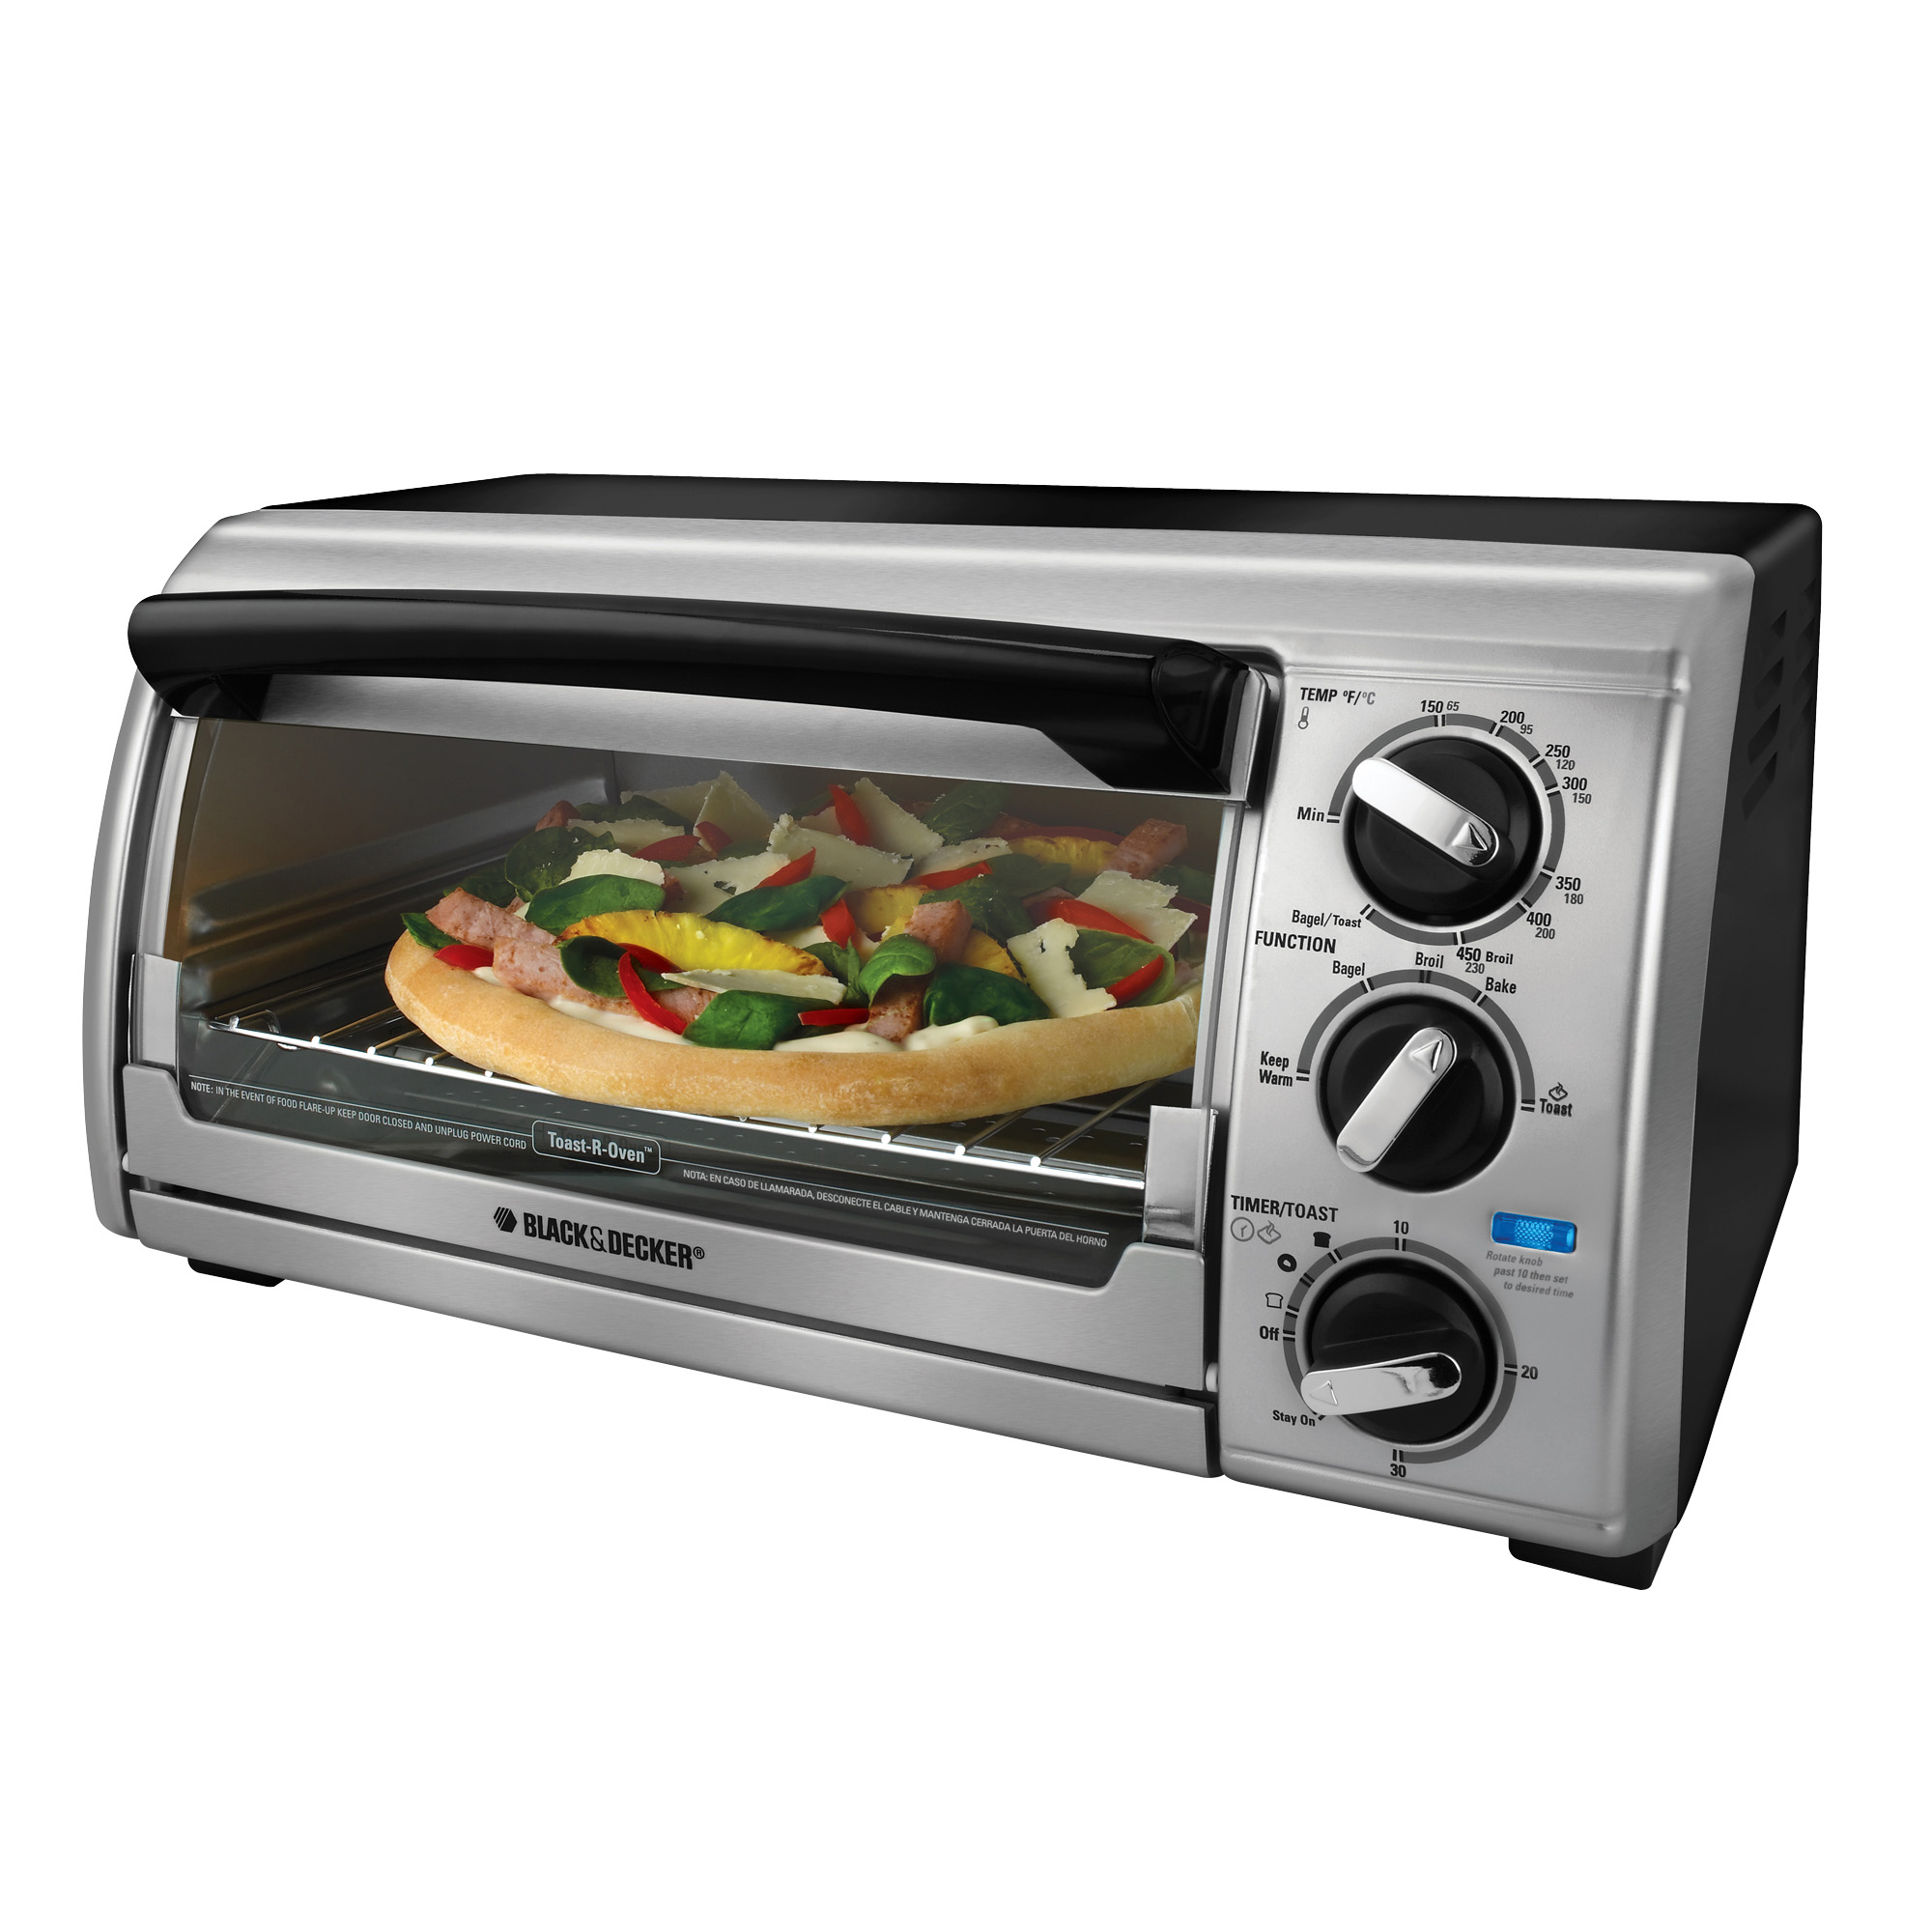 Best Countertop Ovens For Baking Buy A Black And Decker Toaster Oven Counter Top Toaster